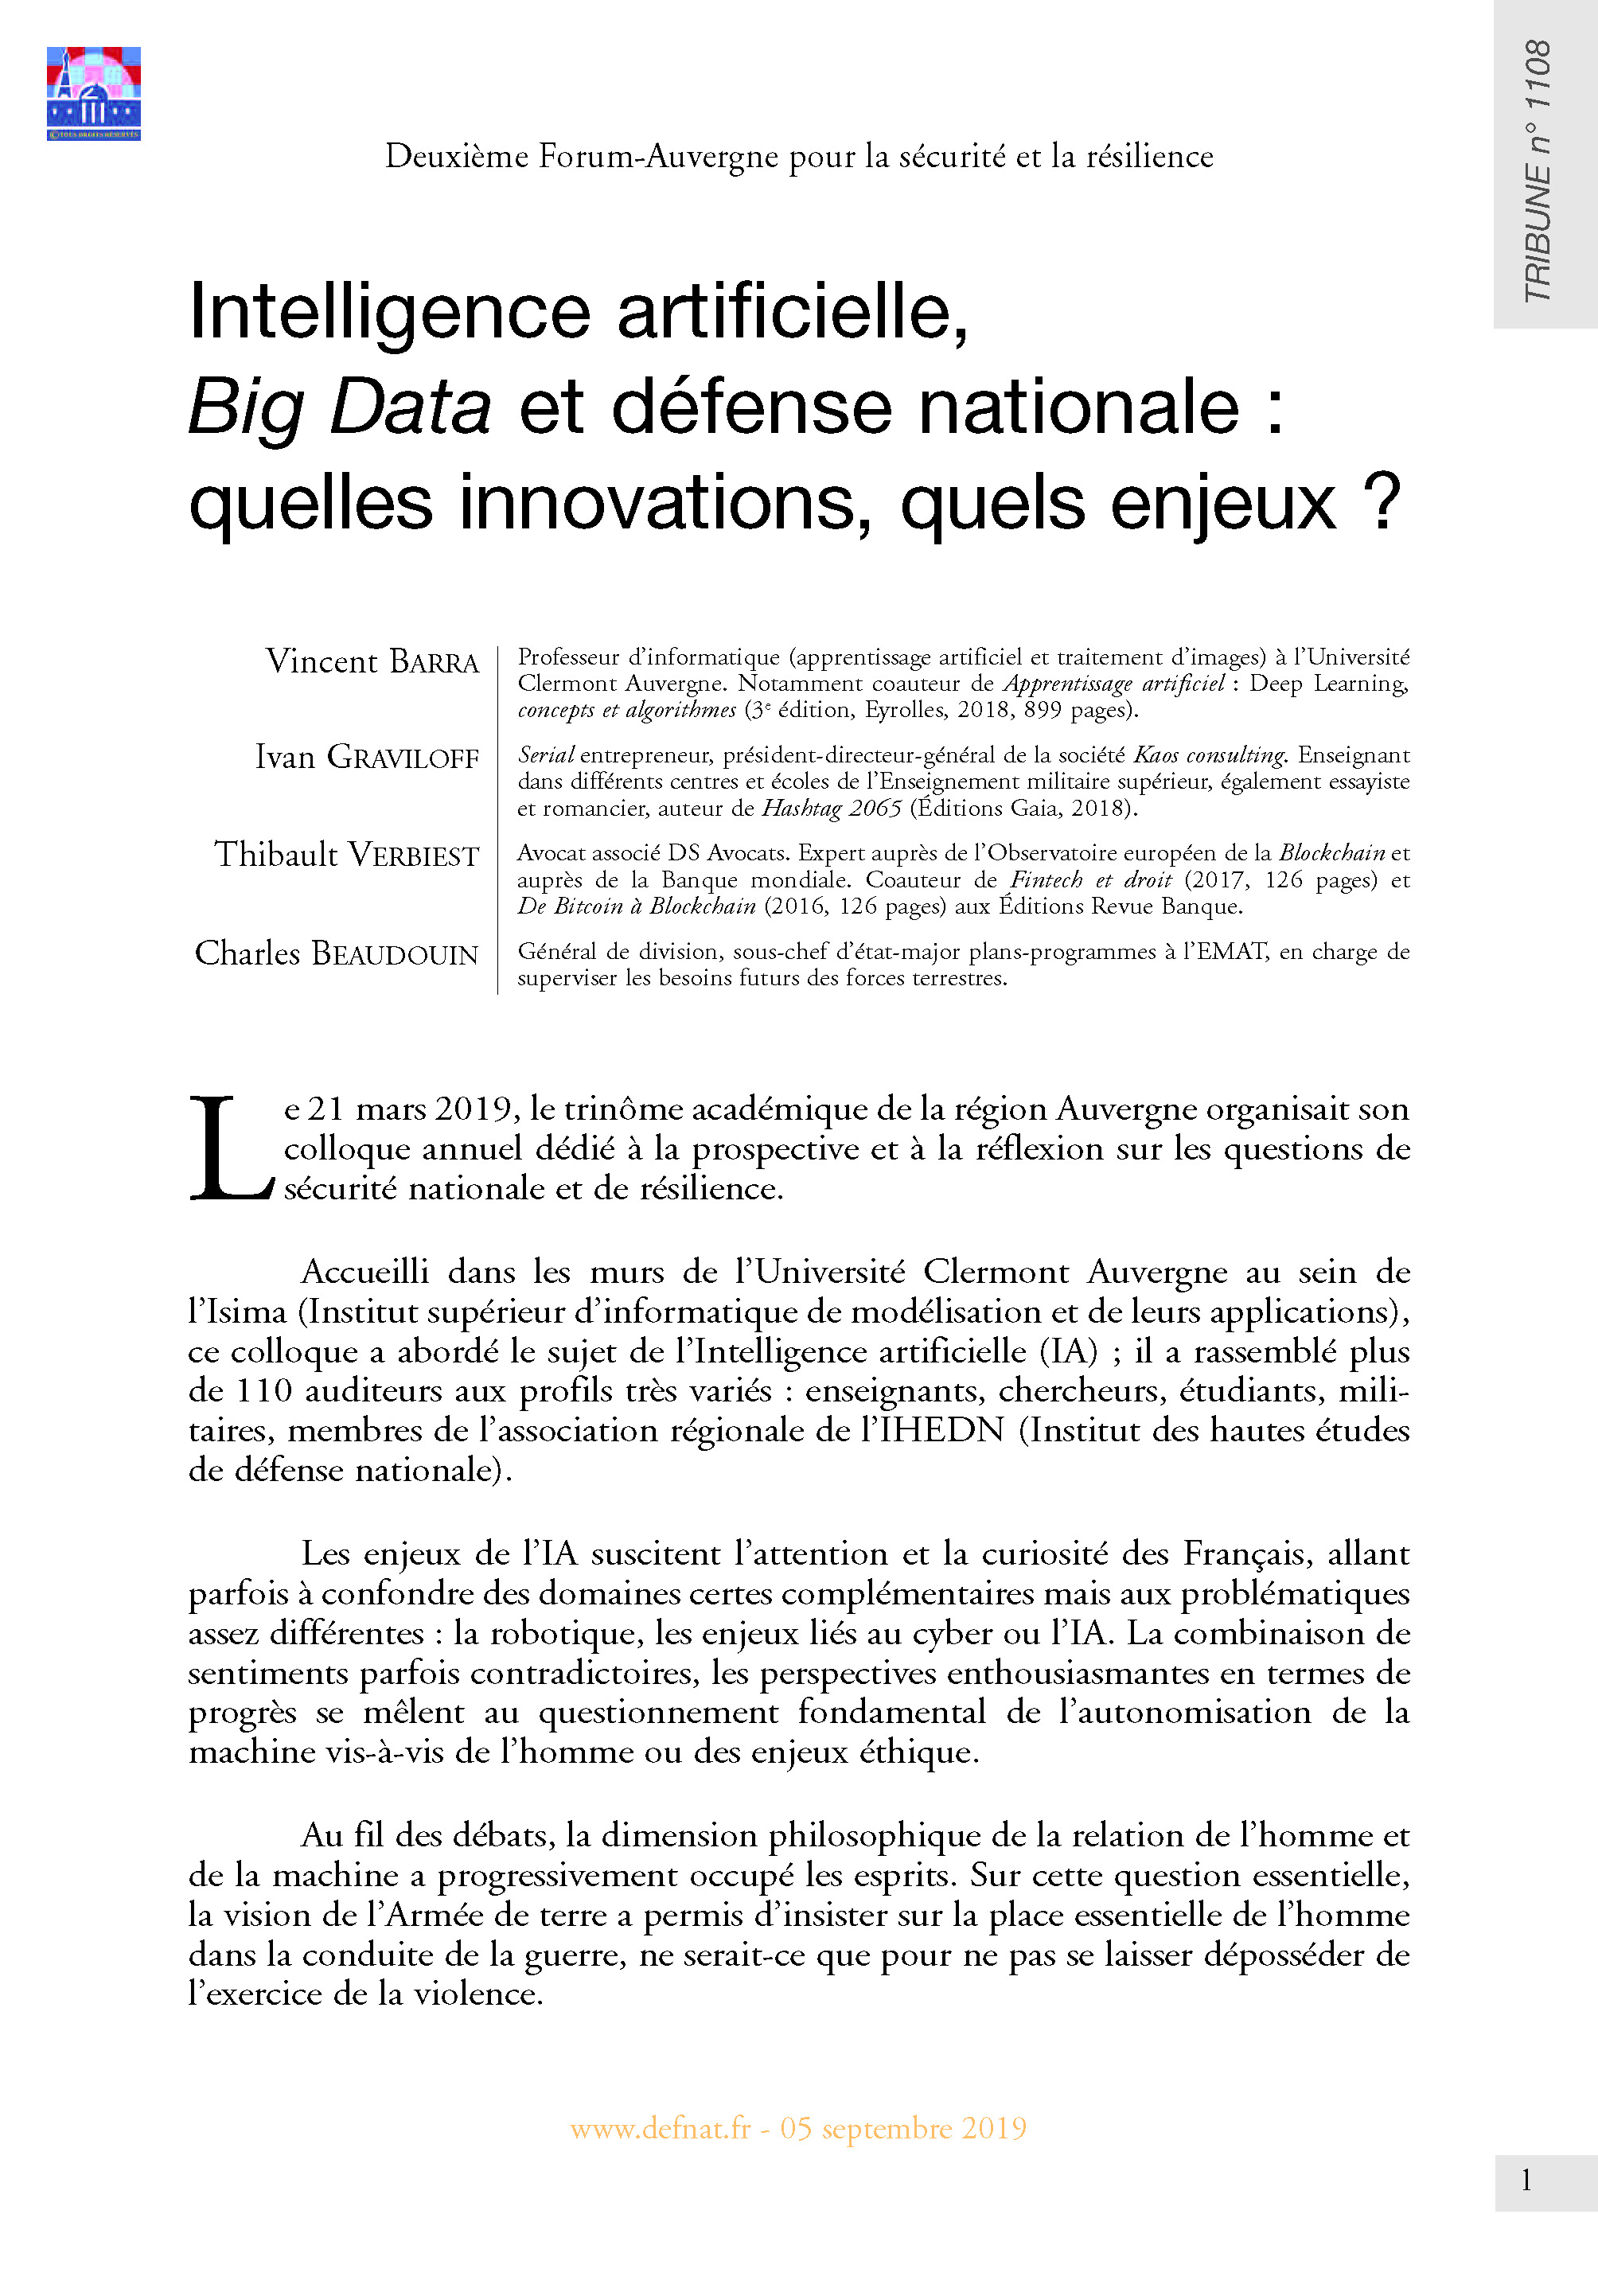 Intelligence artificielle, Big Data et défense nationale : quelles innovations, quels enjeux ? (T 1108)